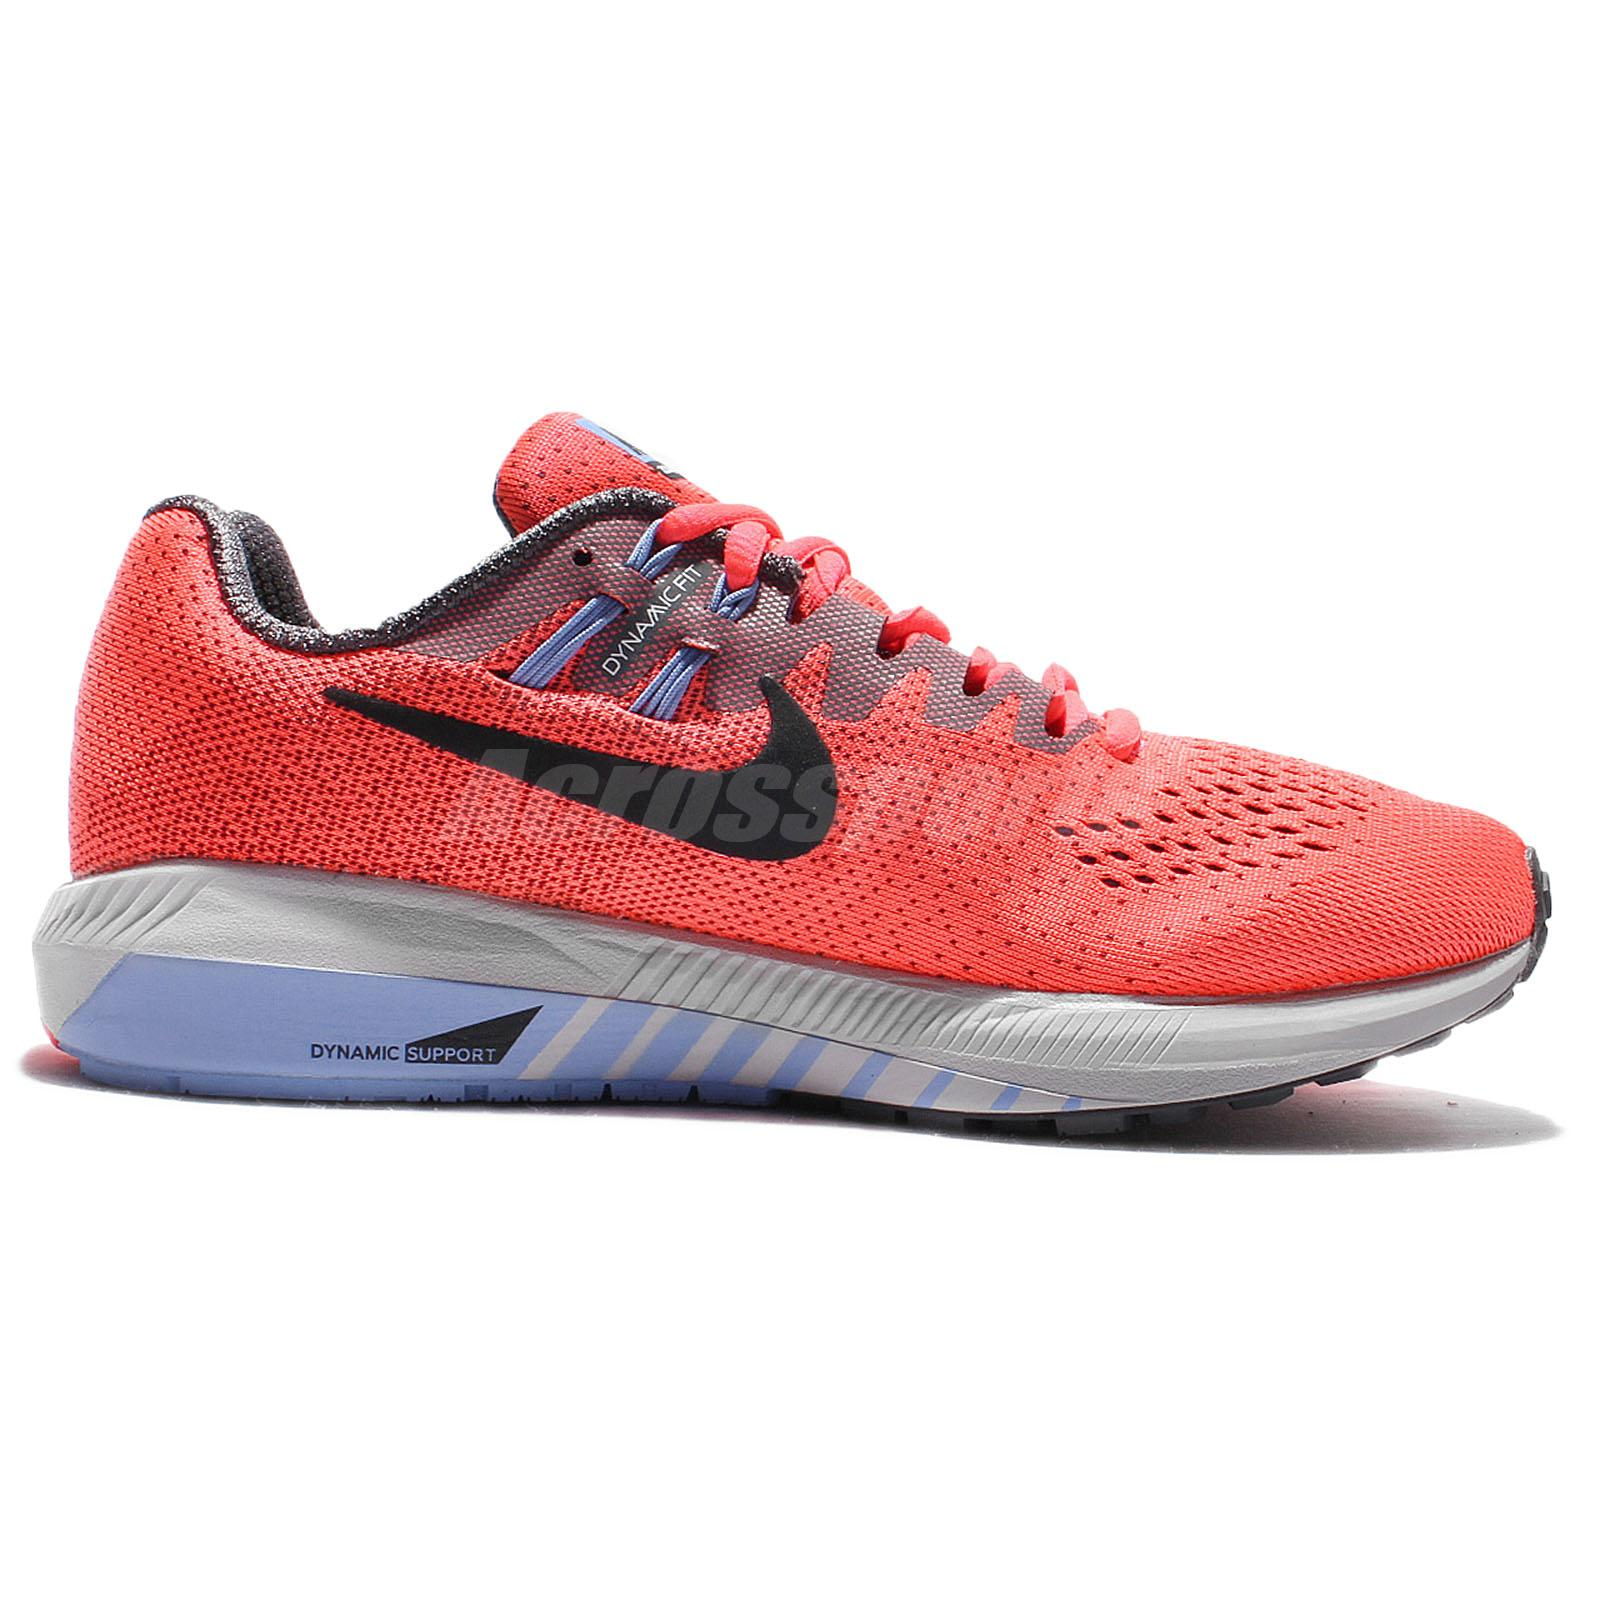 Wmns Nike Air Zoom Structure 20 Hot Punch Black Women Running Shoes 849577-600